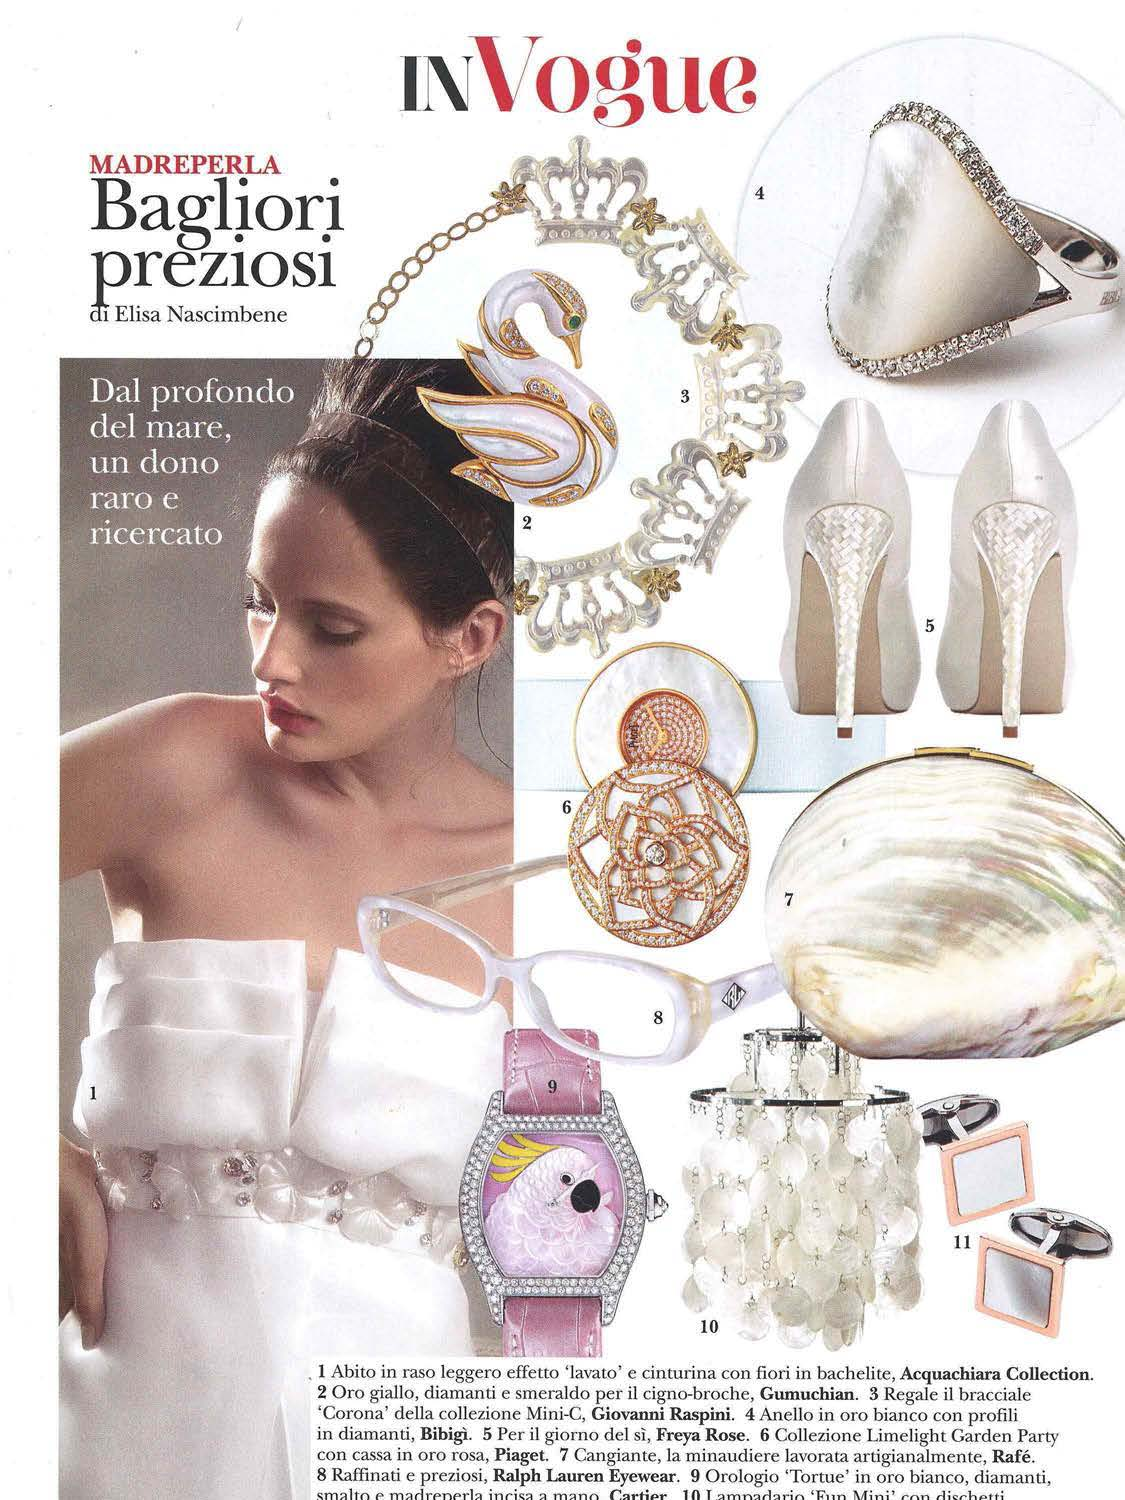 Rafe Vogue Sposa January 2013_Page_2.jpg